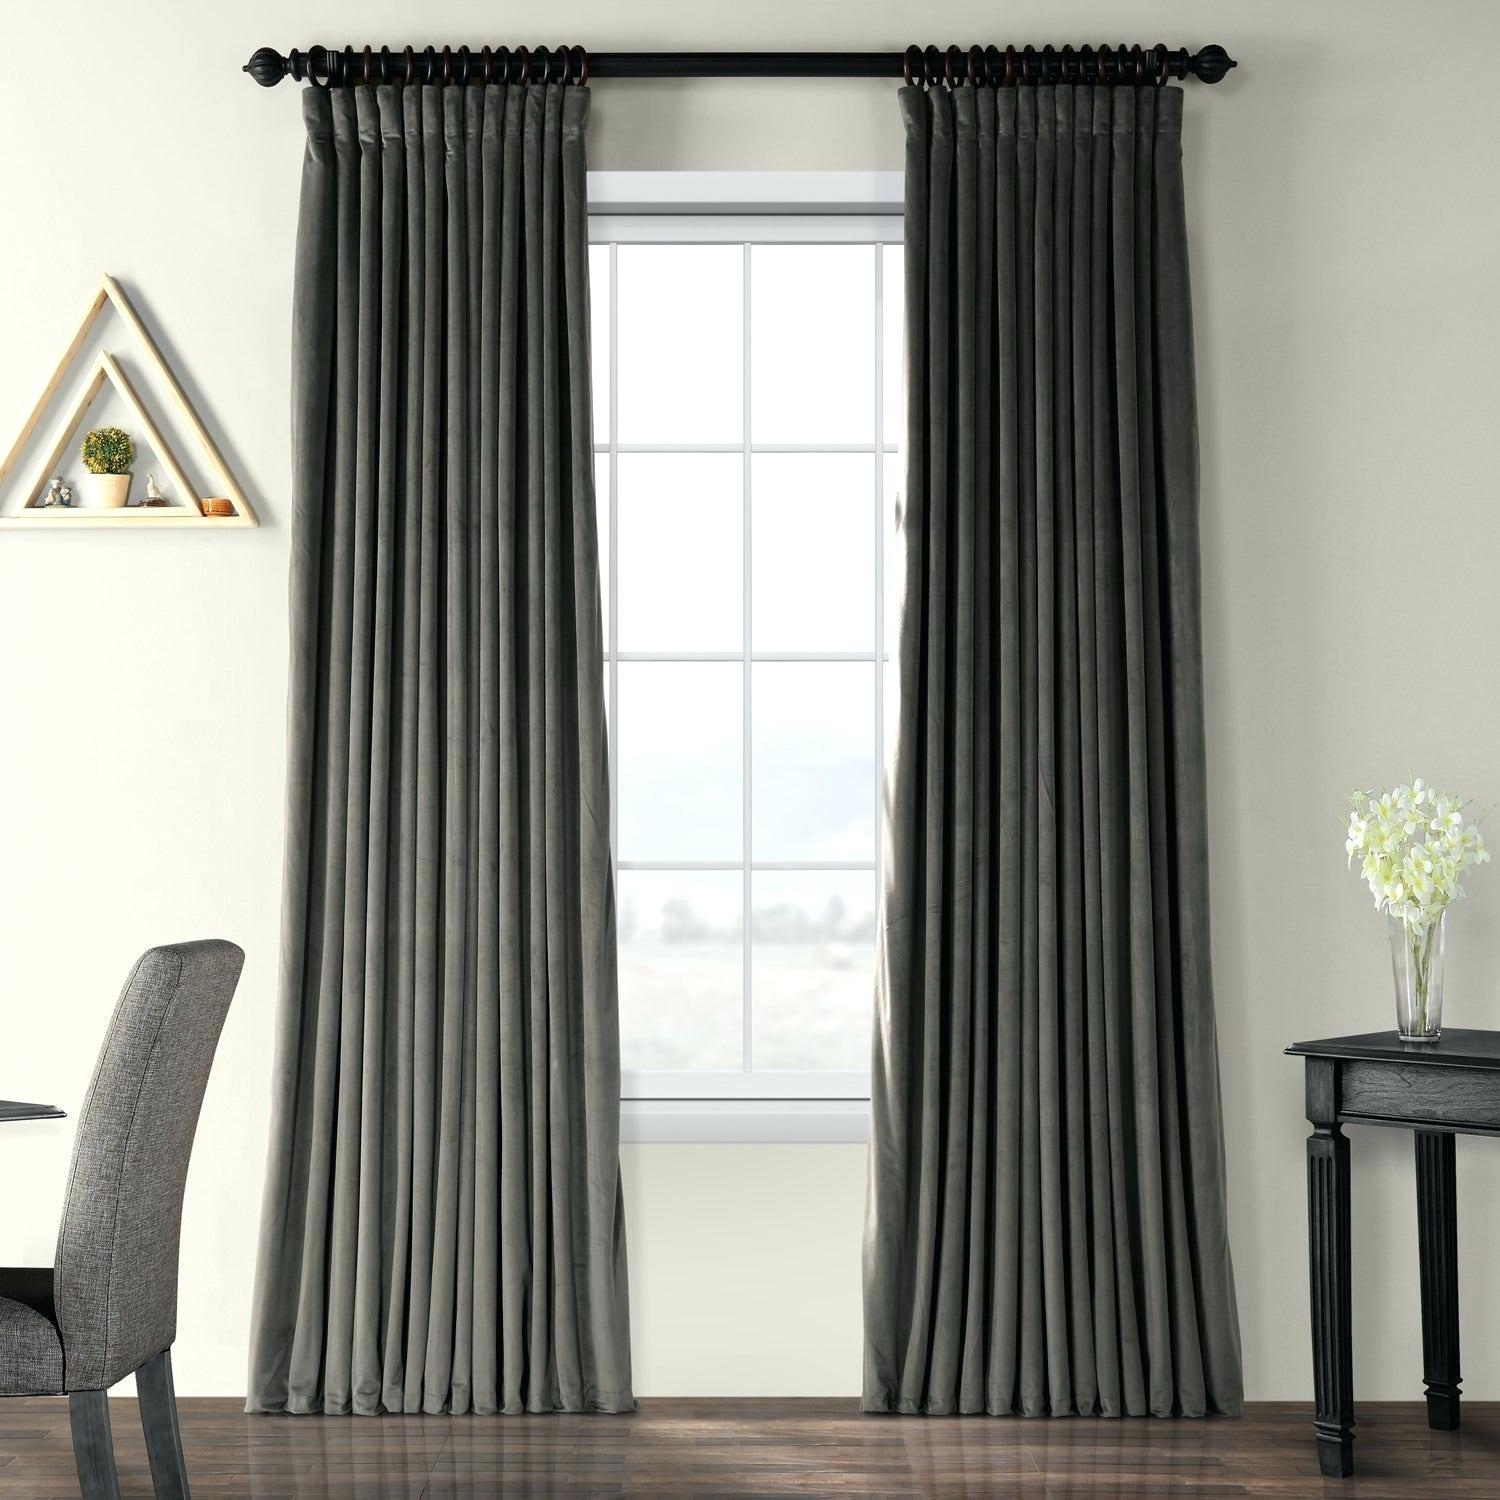 Velvet Curtain Panels For Signature Pinch Pleated Blackout Solid Velvet Curtain Panels (View 33 of 36)